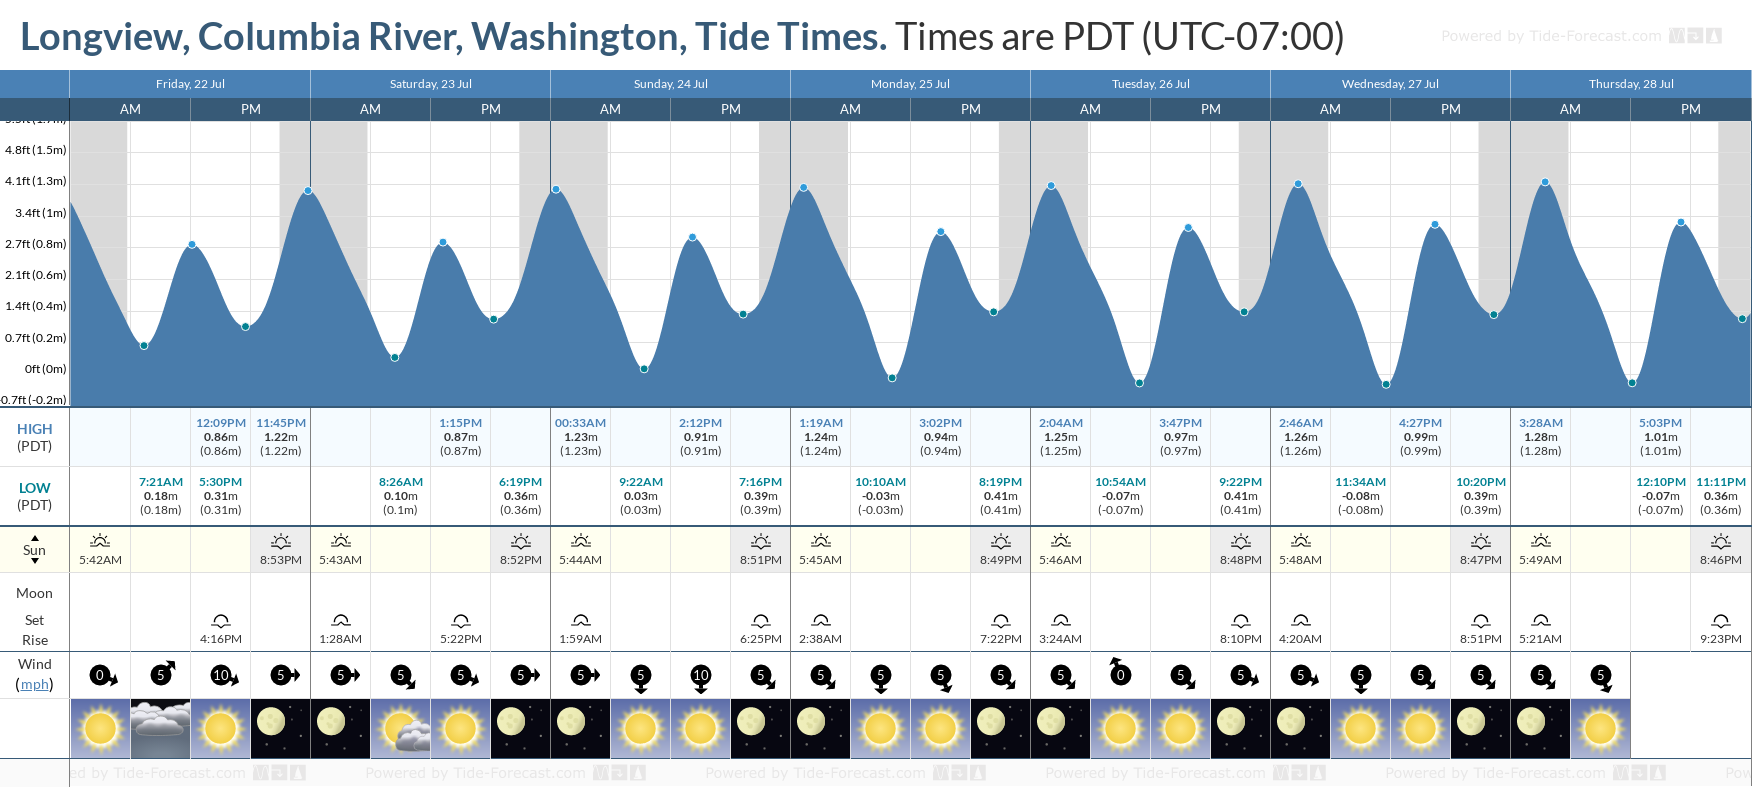 Longview, Columbia River, Washington Tide Chart including high and low tide tide times for the next 7 days